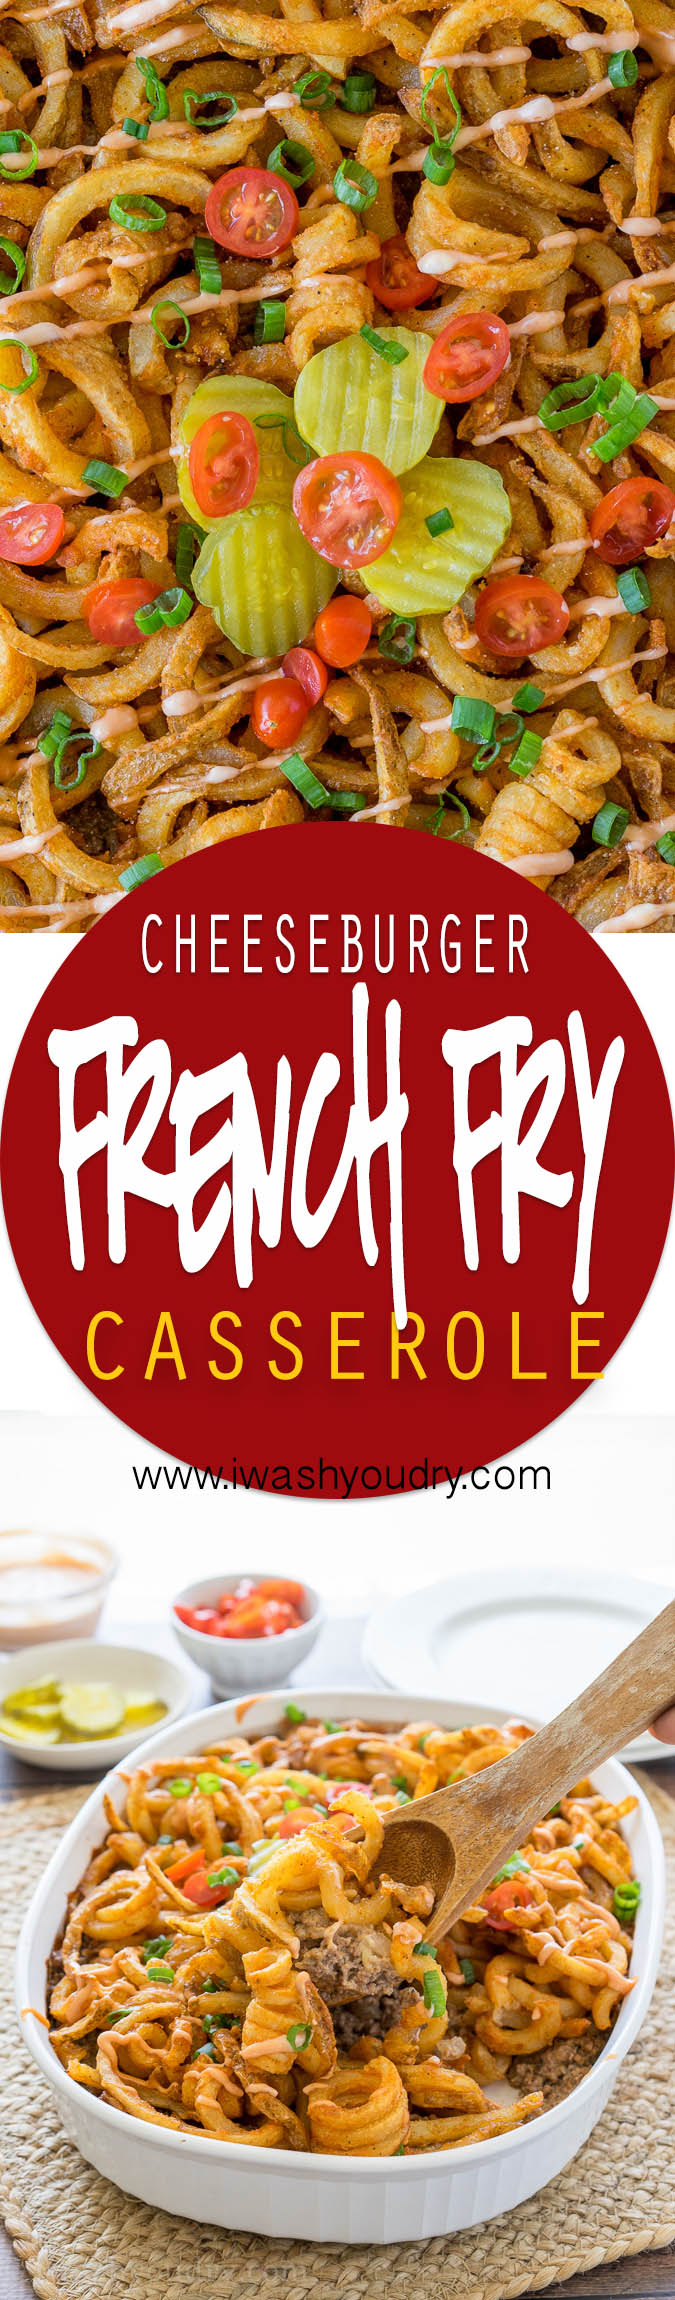 This Cheeseburger and French Fry Casserole is filled with all the hamburger favorites and even topped with crispy seasoned french fries and a creamy fry sauce!